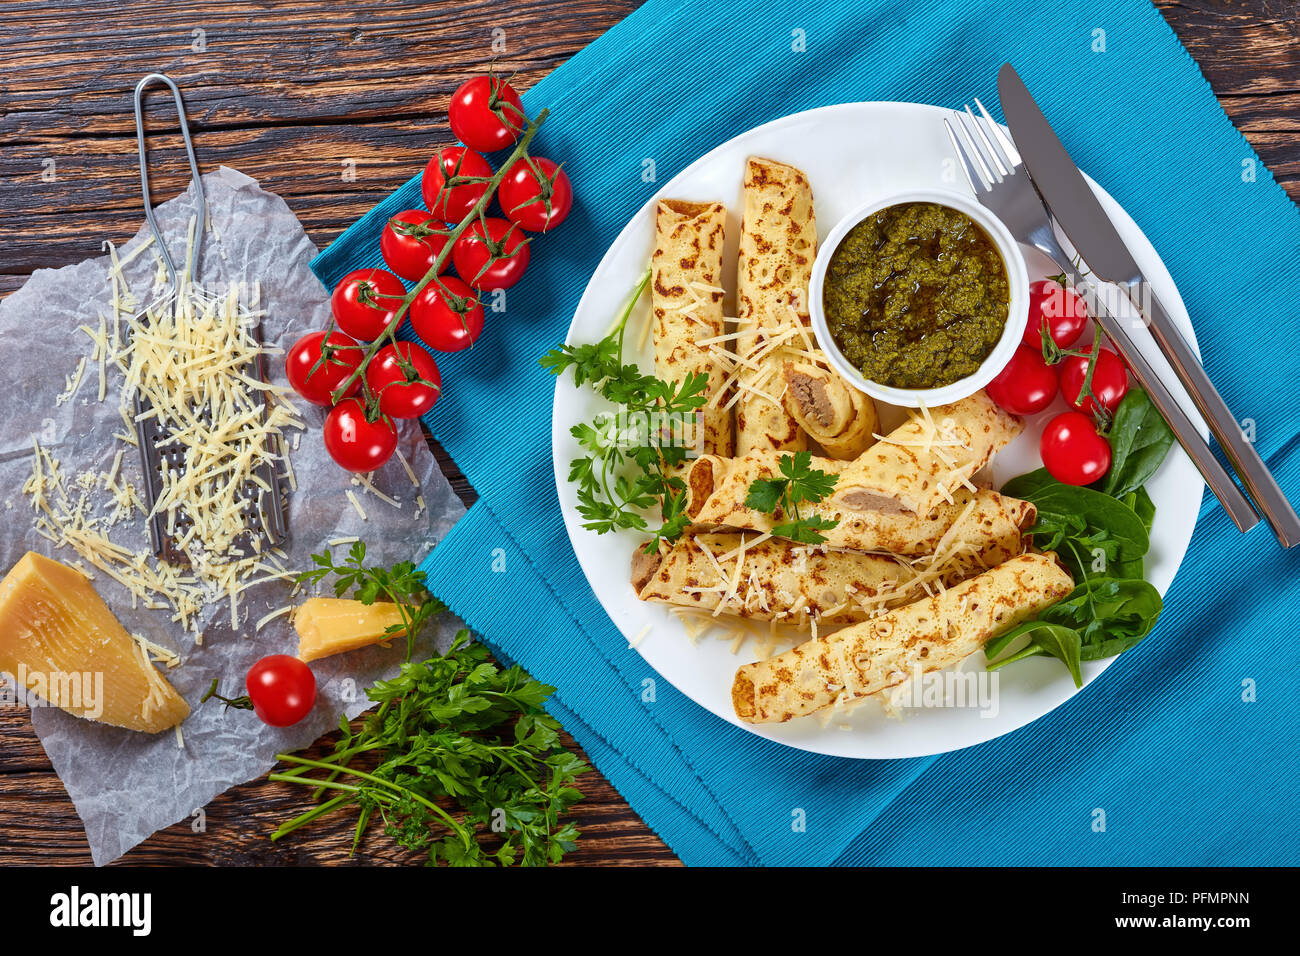 delicious fried crepes stuffed with chicken meat sprinkled with grated parmesan cheese, served on a white plate with spinach, cherry tomatoes and home - Stock Image